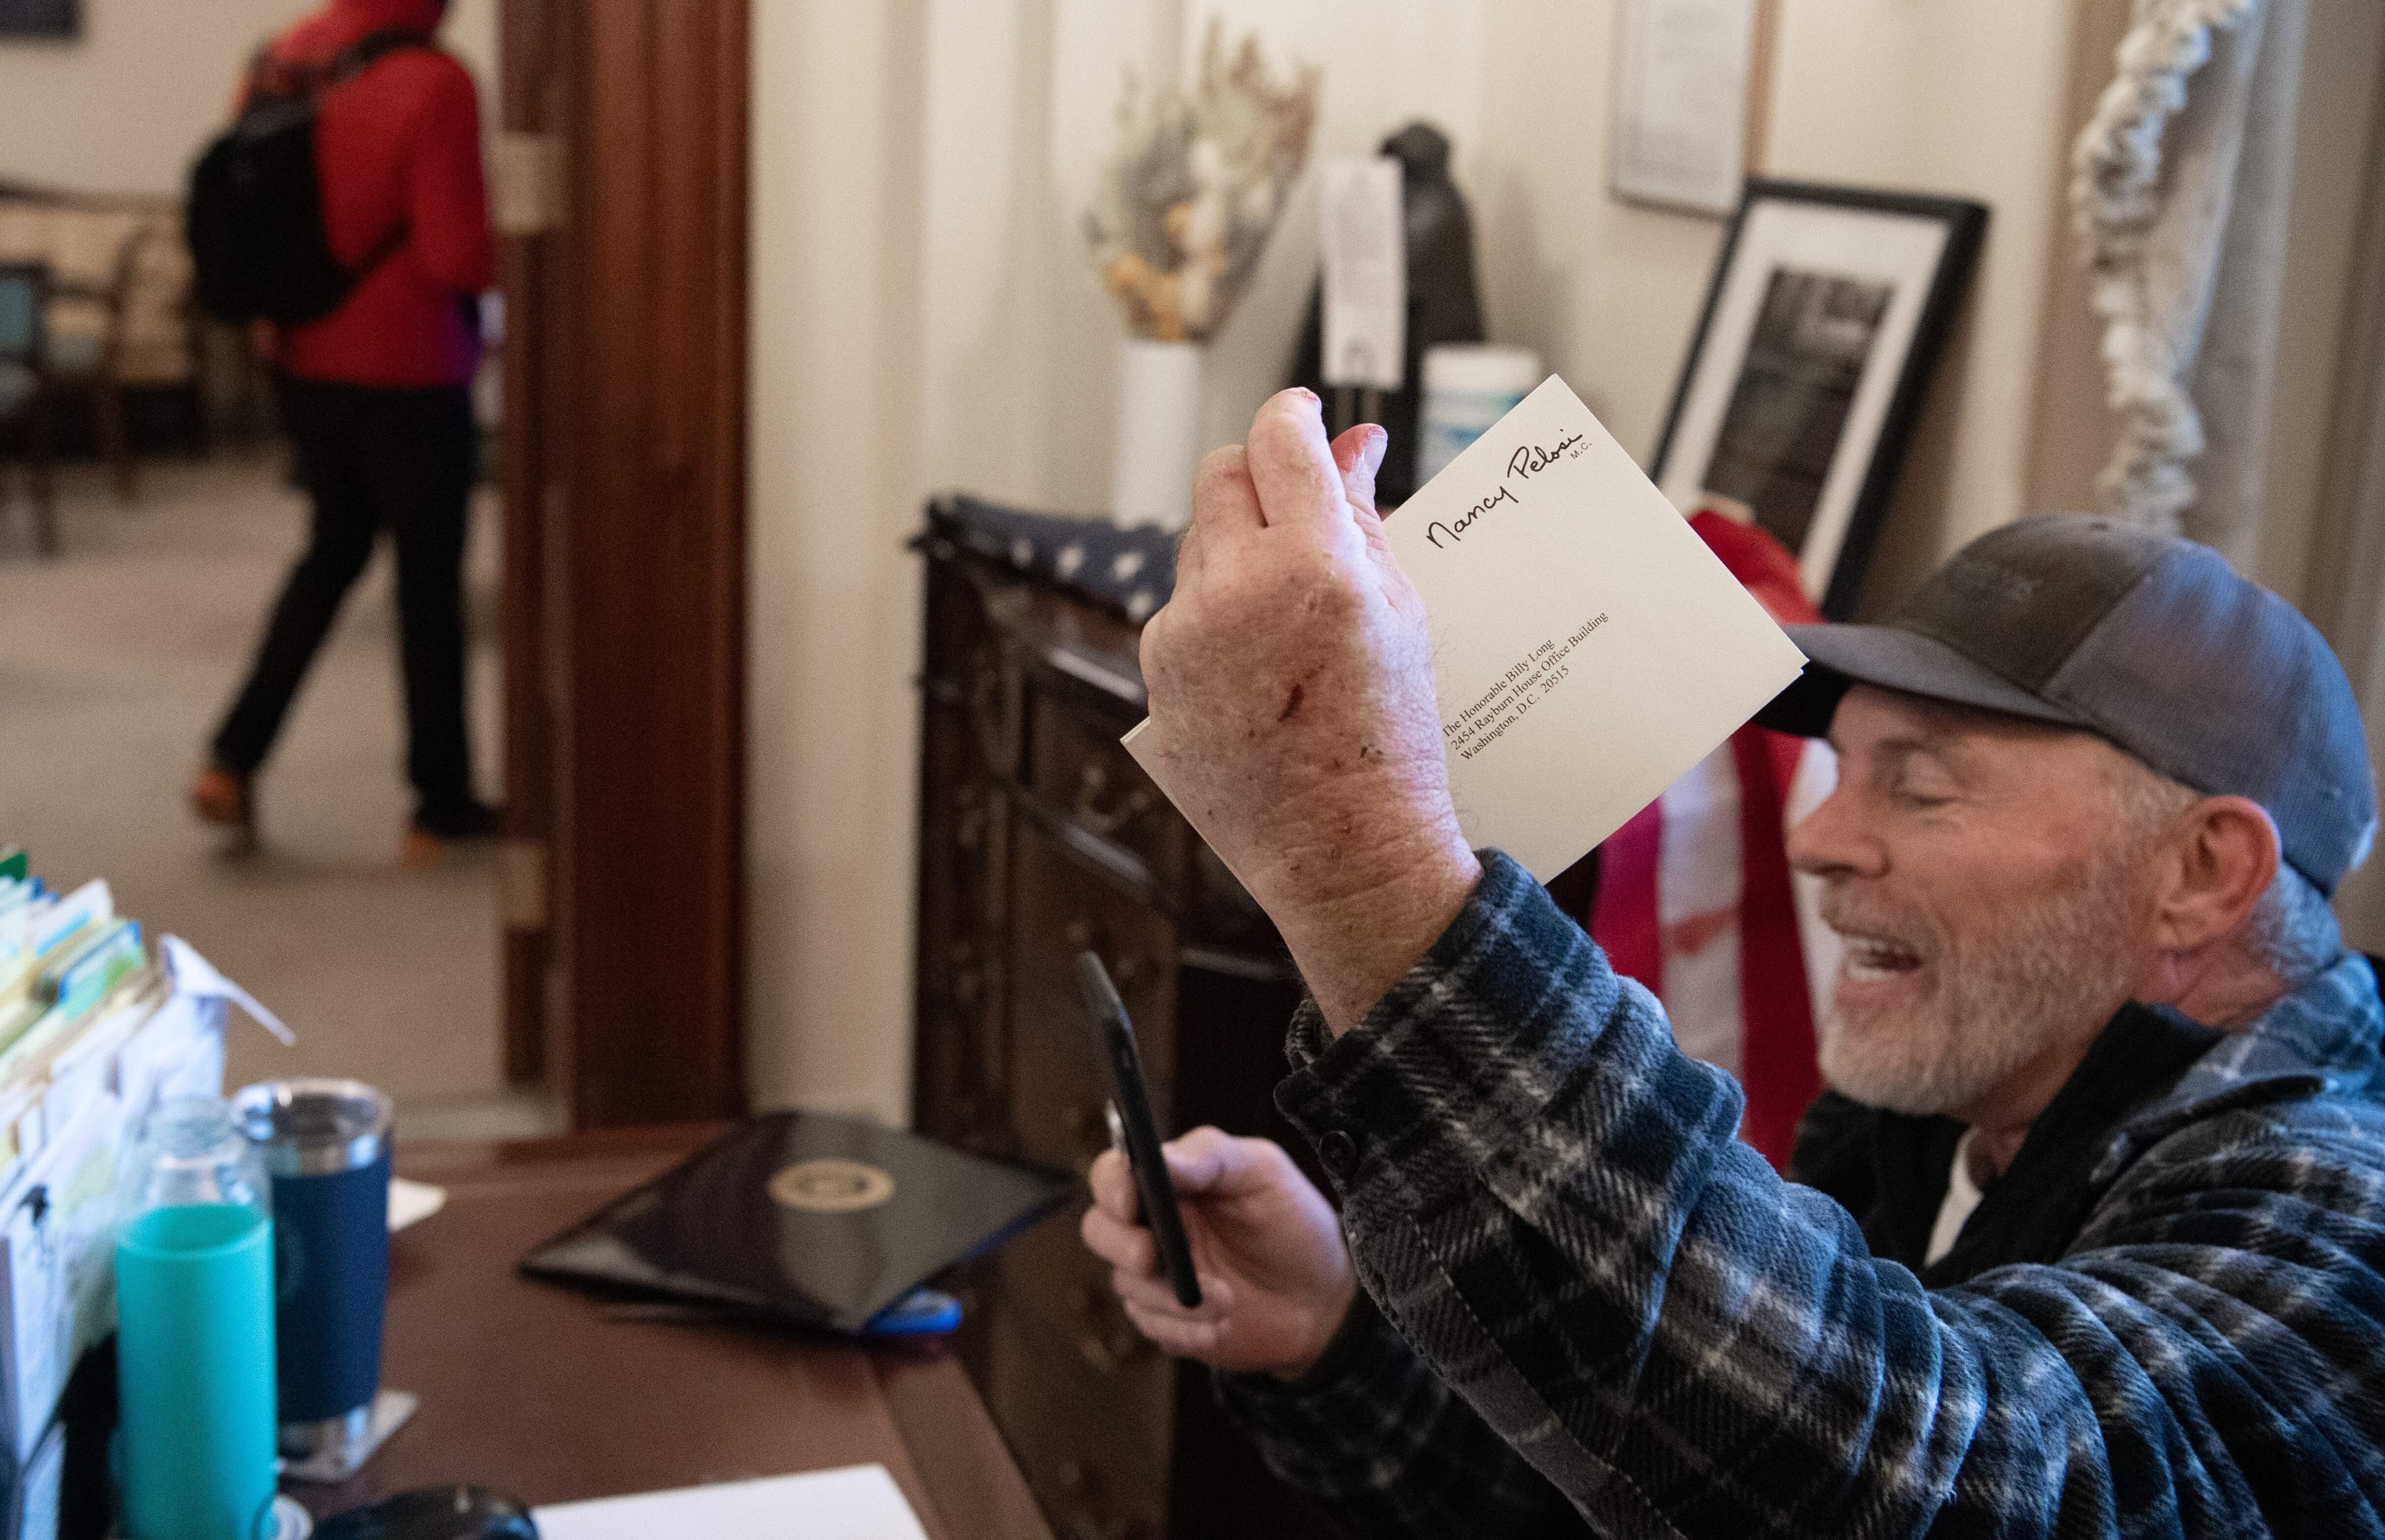 A pro-Trump rioter goes through items on the desk of a Pelosi staffer.